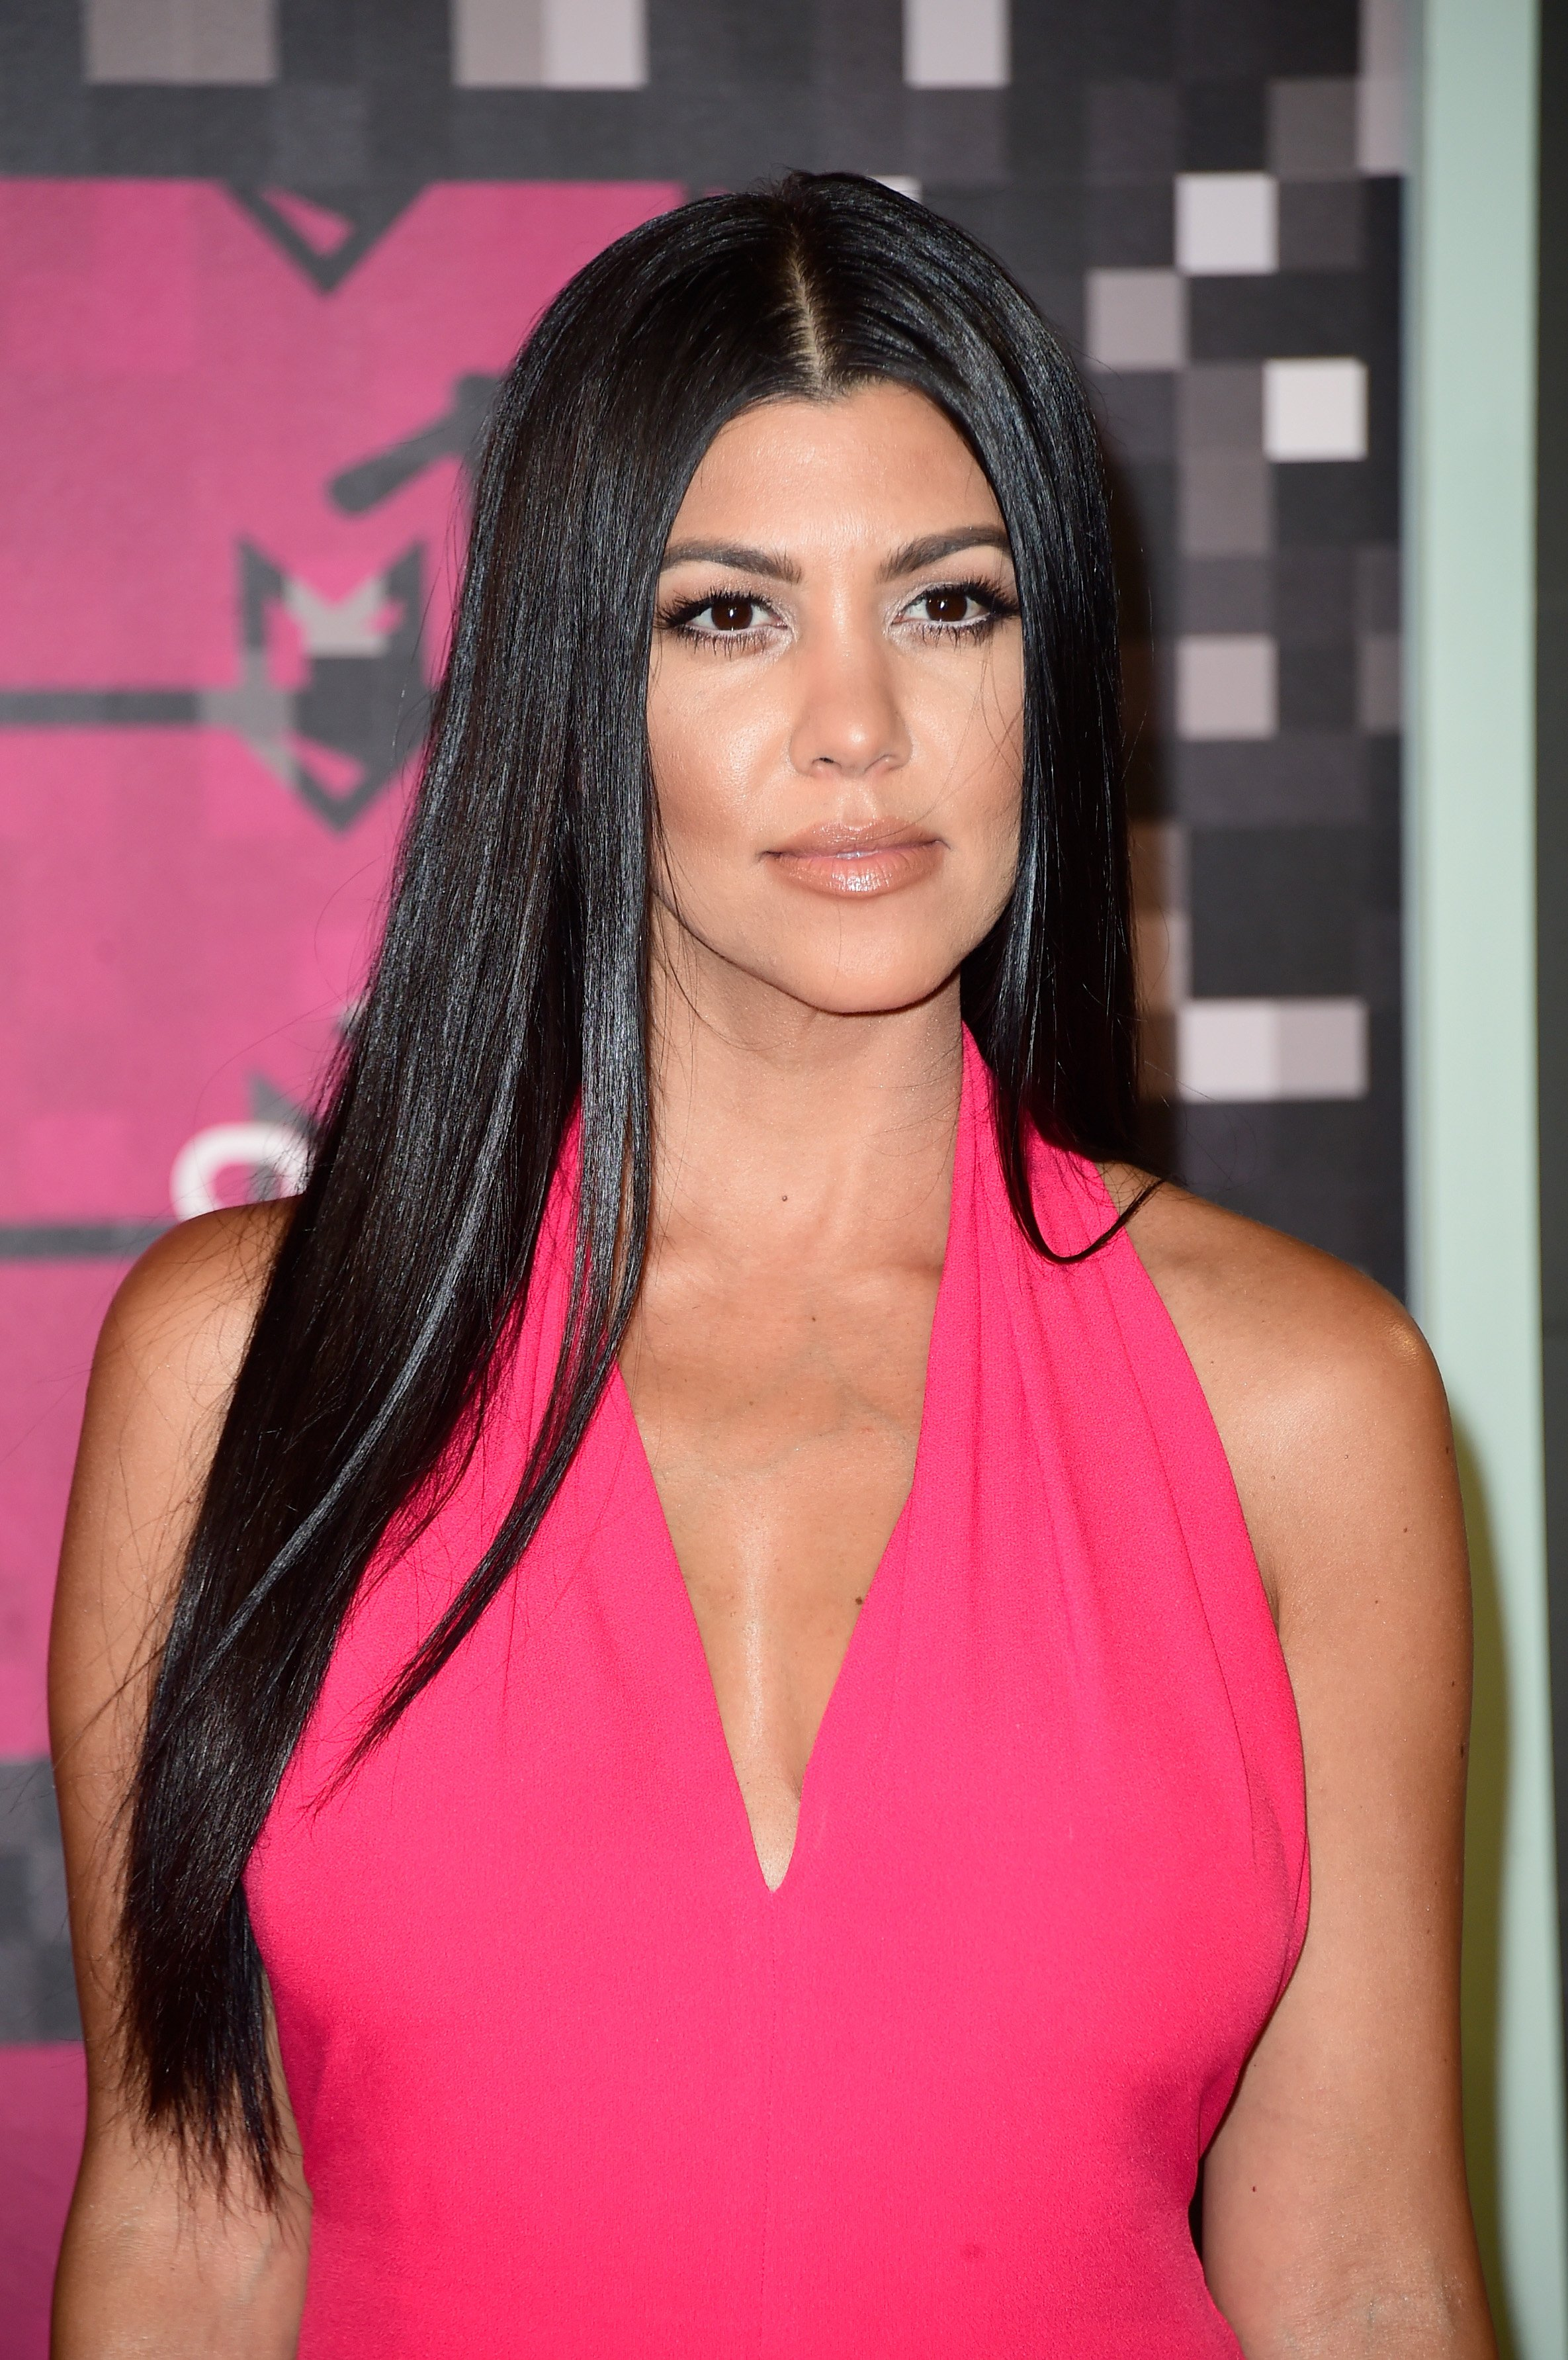 Kourtney Kardashian at the 2015 MTV Video Music Awards in Los Angeles, California | Source: Getty Images